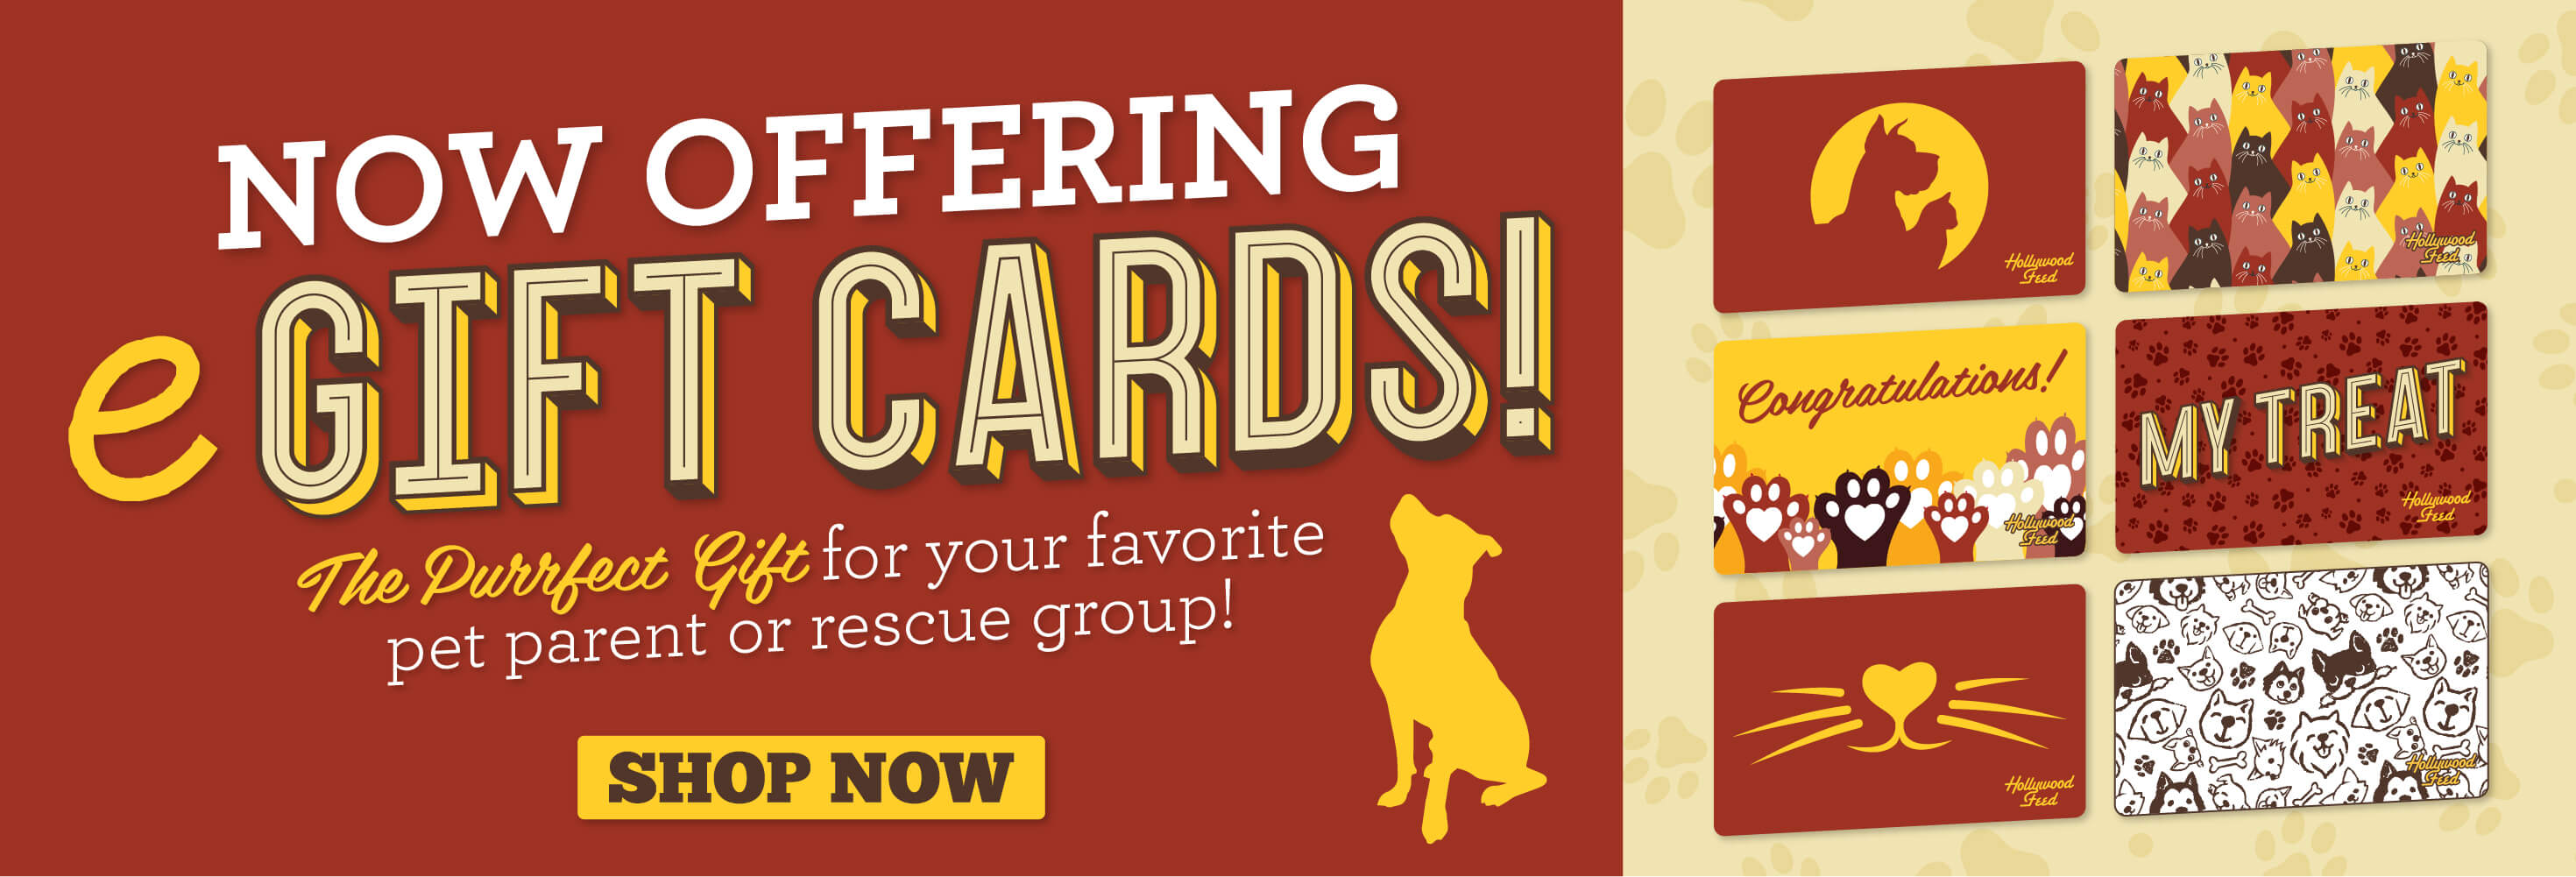 Now offering egift cards, the purrfect gift for your favorite pet parent or rescue group, link to shop now, picture of different egift card designs